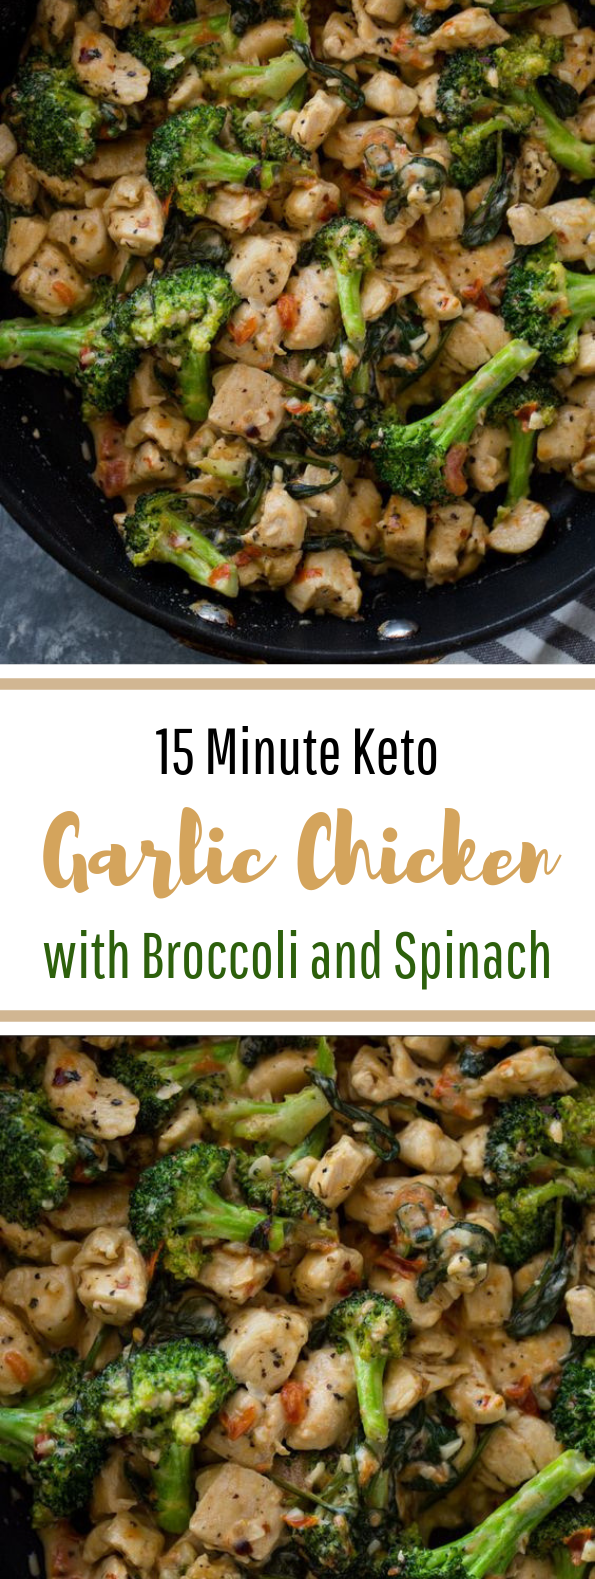 Garlic Chicken with Broccoli and Spinach #lowcarb #keto